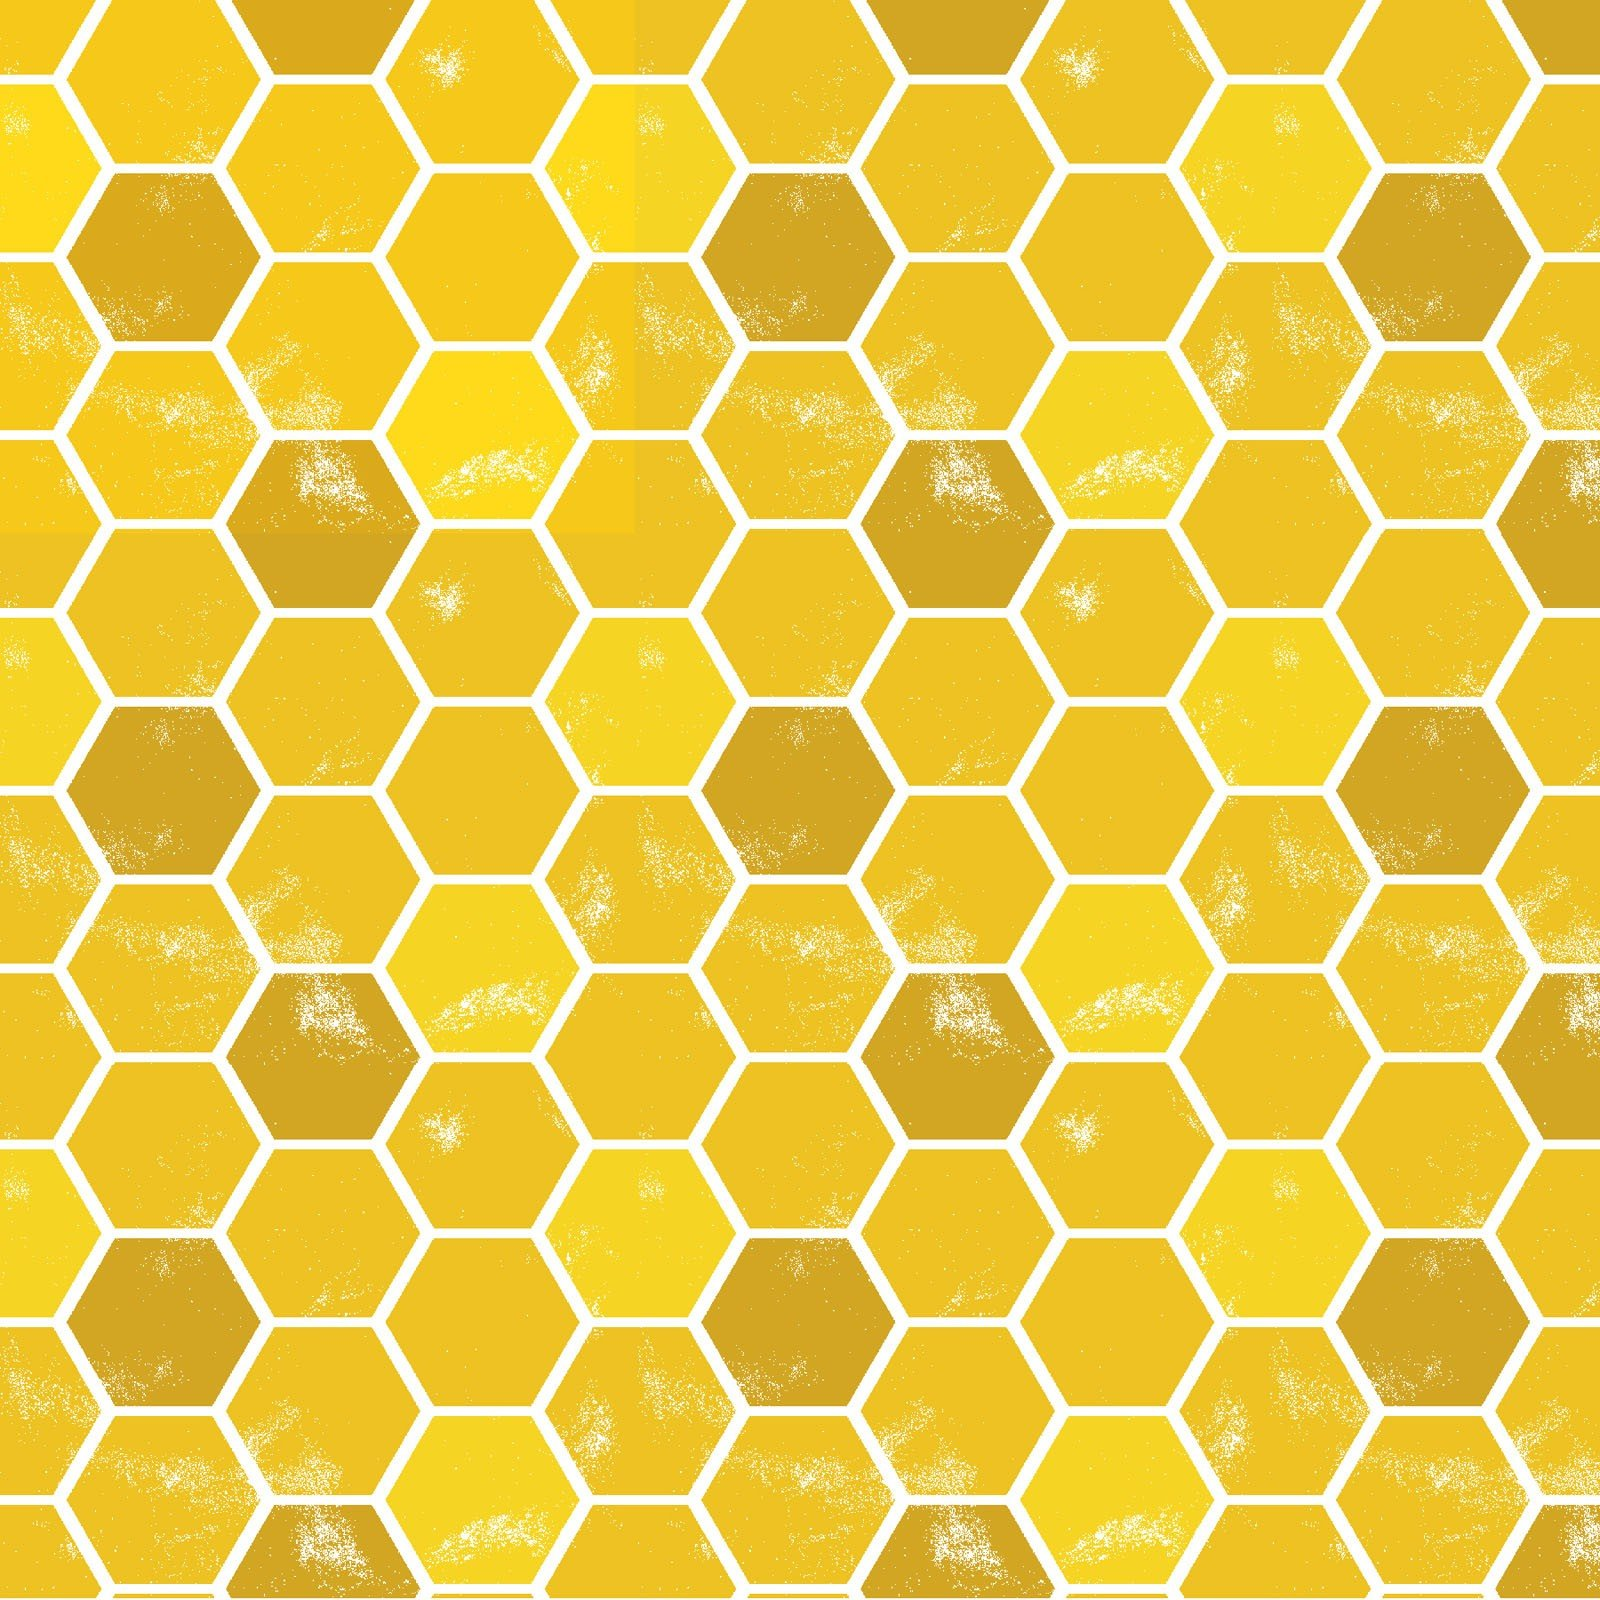 3 Wishes Feed the Bees by Deanne Beasley 17218 GLD Gold Honeycomb $8.30/yd